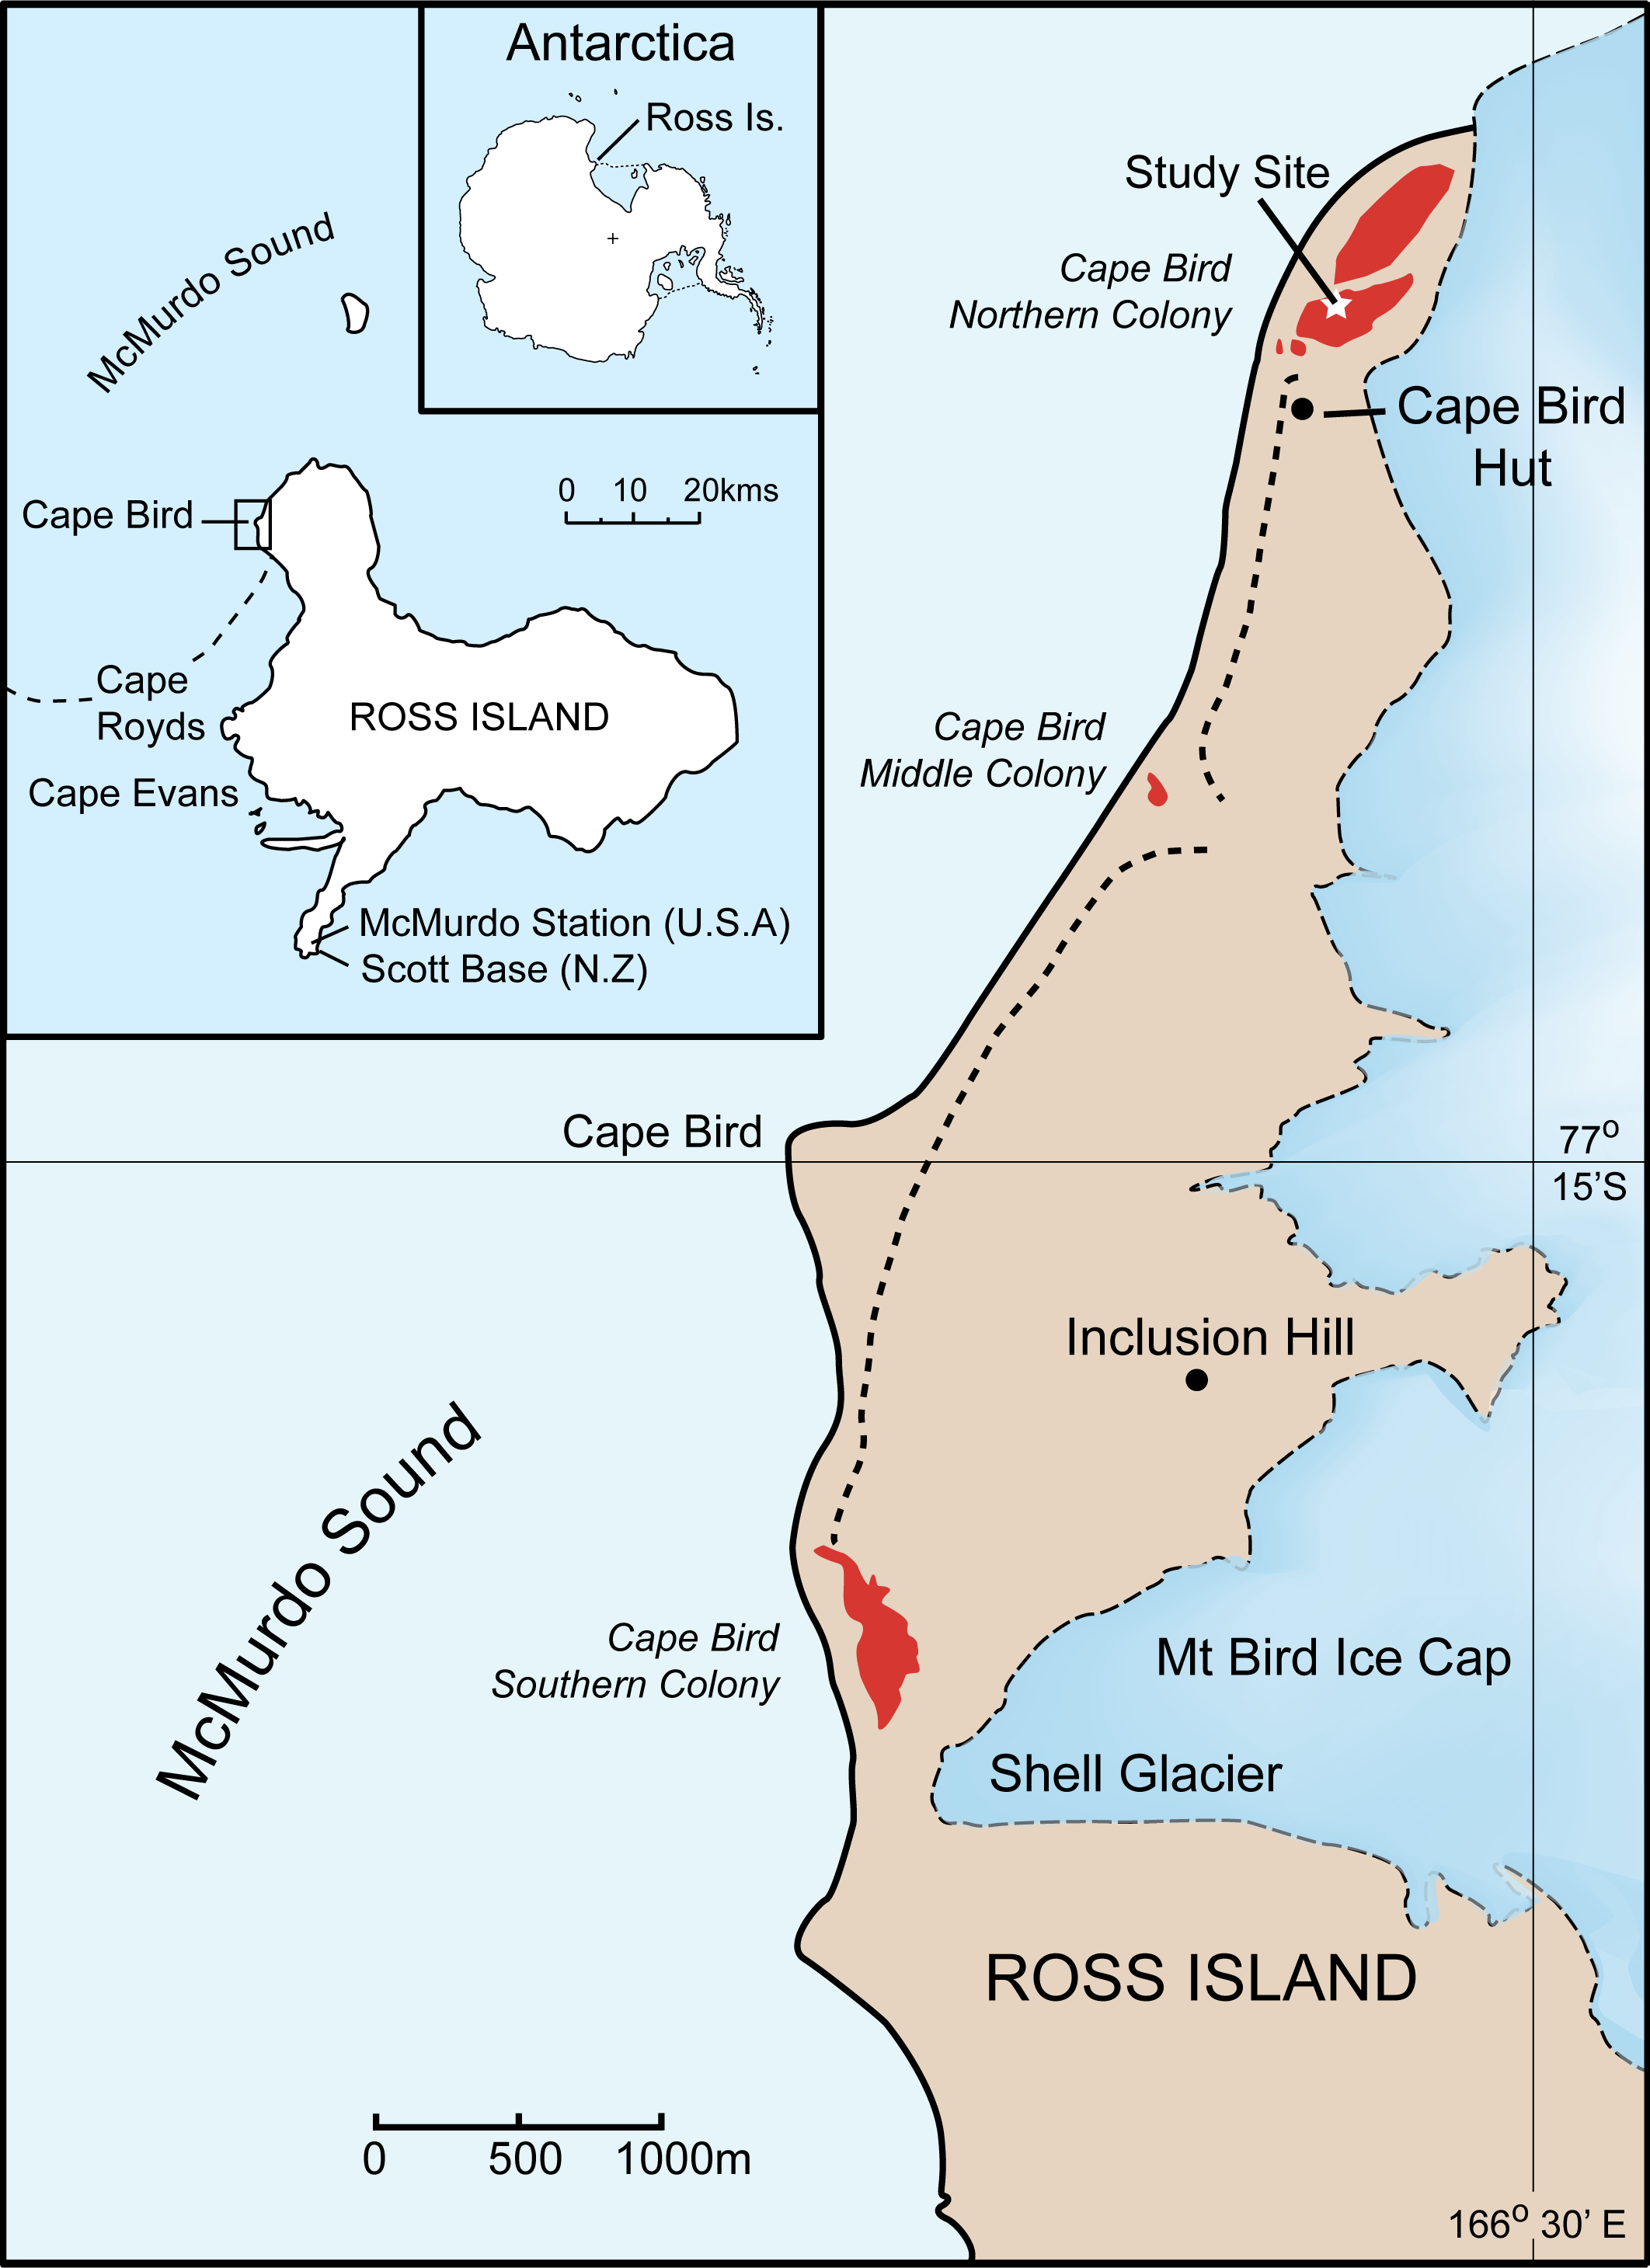 Location of the study site at Cape Bird, Ross Island, Antarctica.